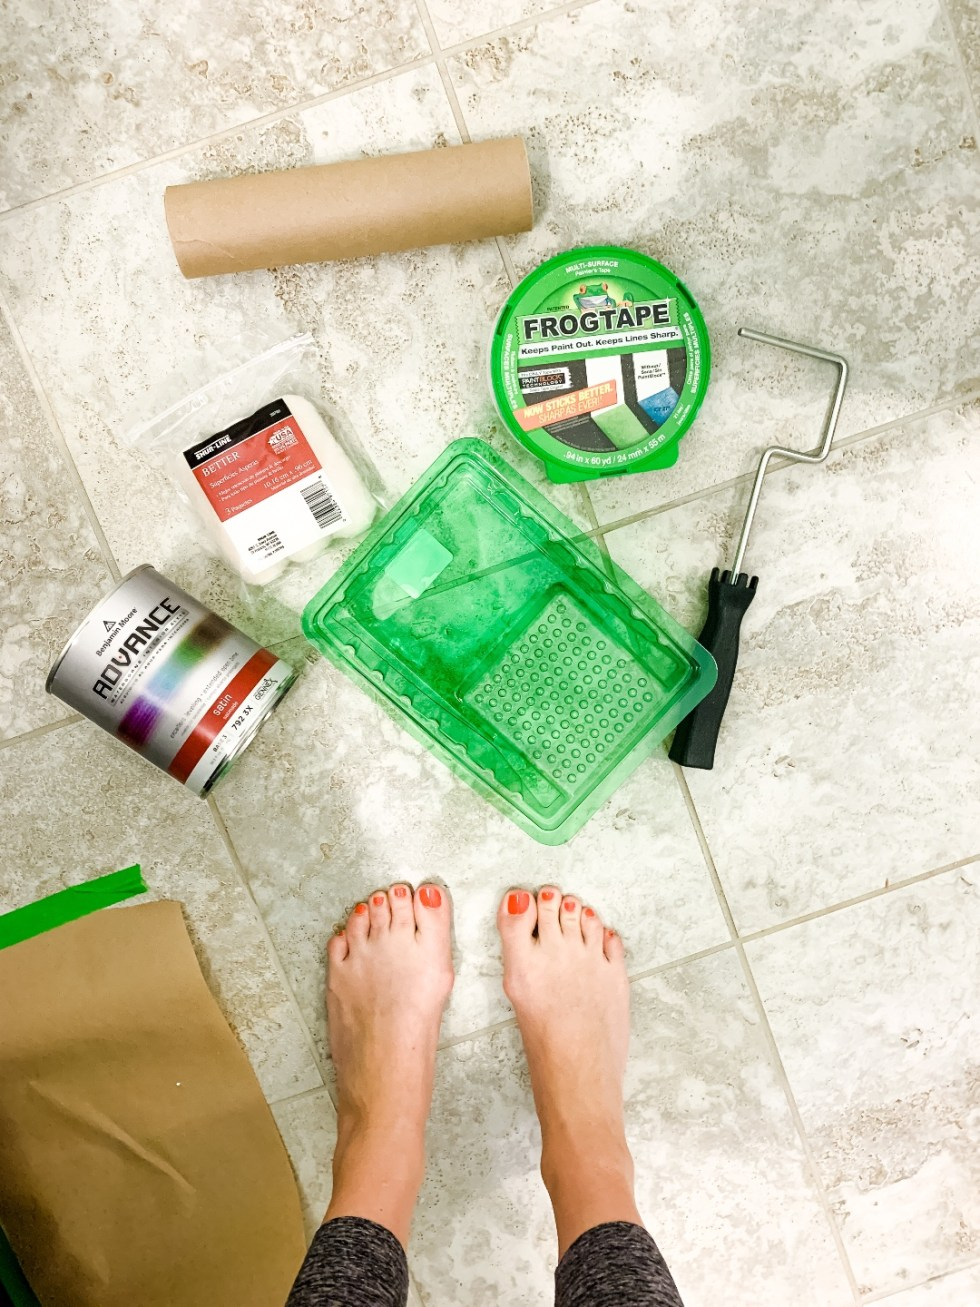 How to Renovate a Guest Bathroom on a Budget: 5 Practical Tips - I'm Fixin' To - @mbg0112 |  How to Update a Guest Bathroom on a Budget by popular North Carolina life and style blog: image of Frogtape, Amazon Wooster Brush RR013 Jumbo-Koter Frame, Wooster Brush RR304-4-1/2 Jumbo, and Benjamin Moore paint product.